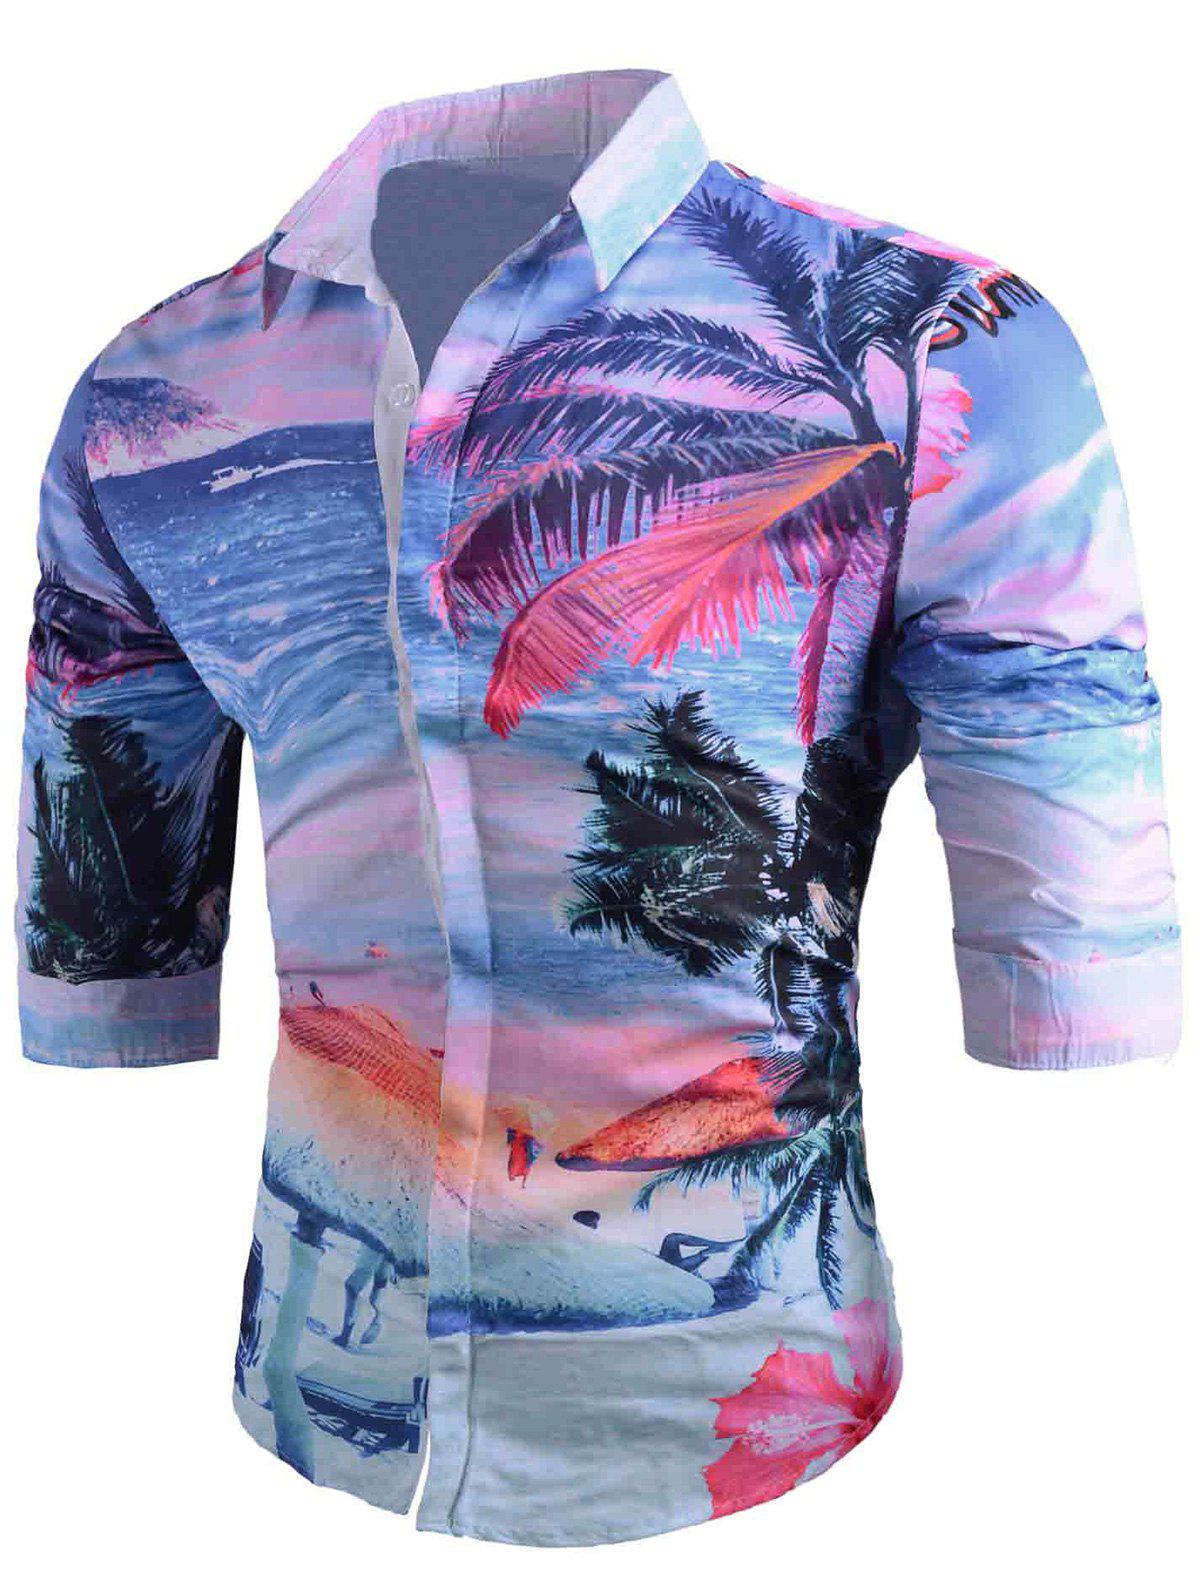 Sandbeach Coconut Tree Print Hawaiian Shirt - COLORMIX 2XL